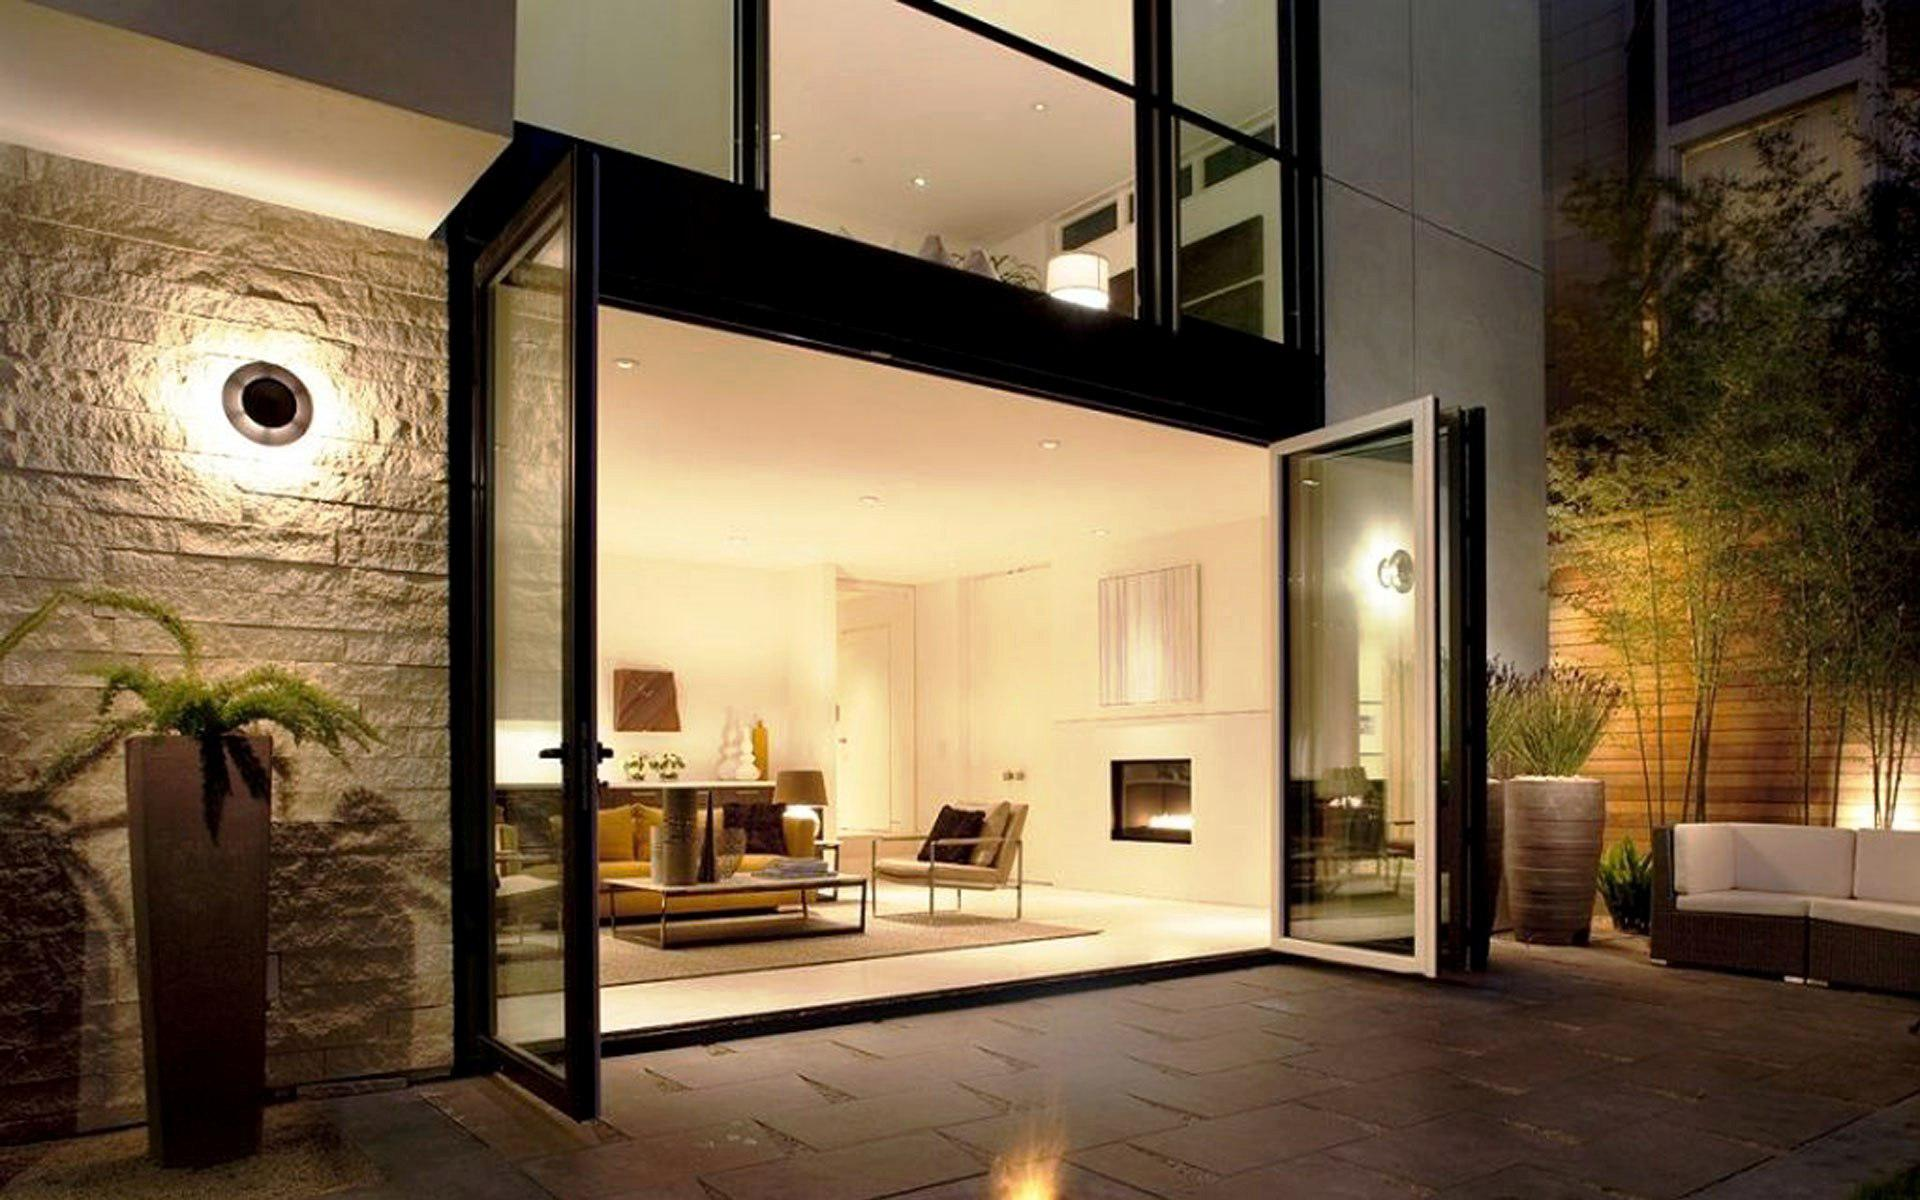 4 Tips to Re-design a Home!